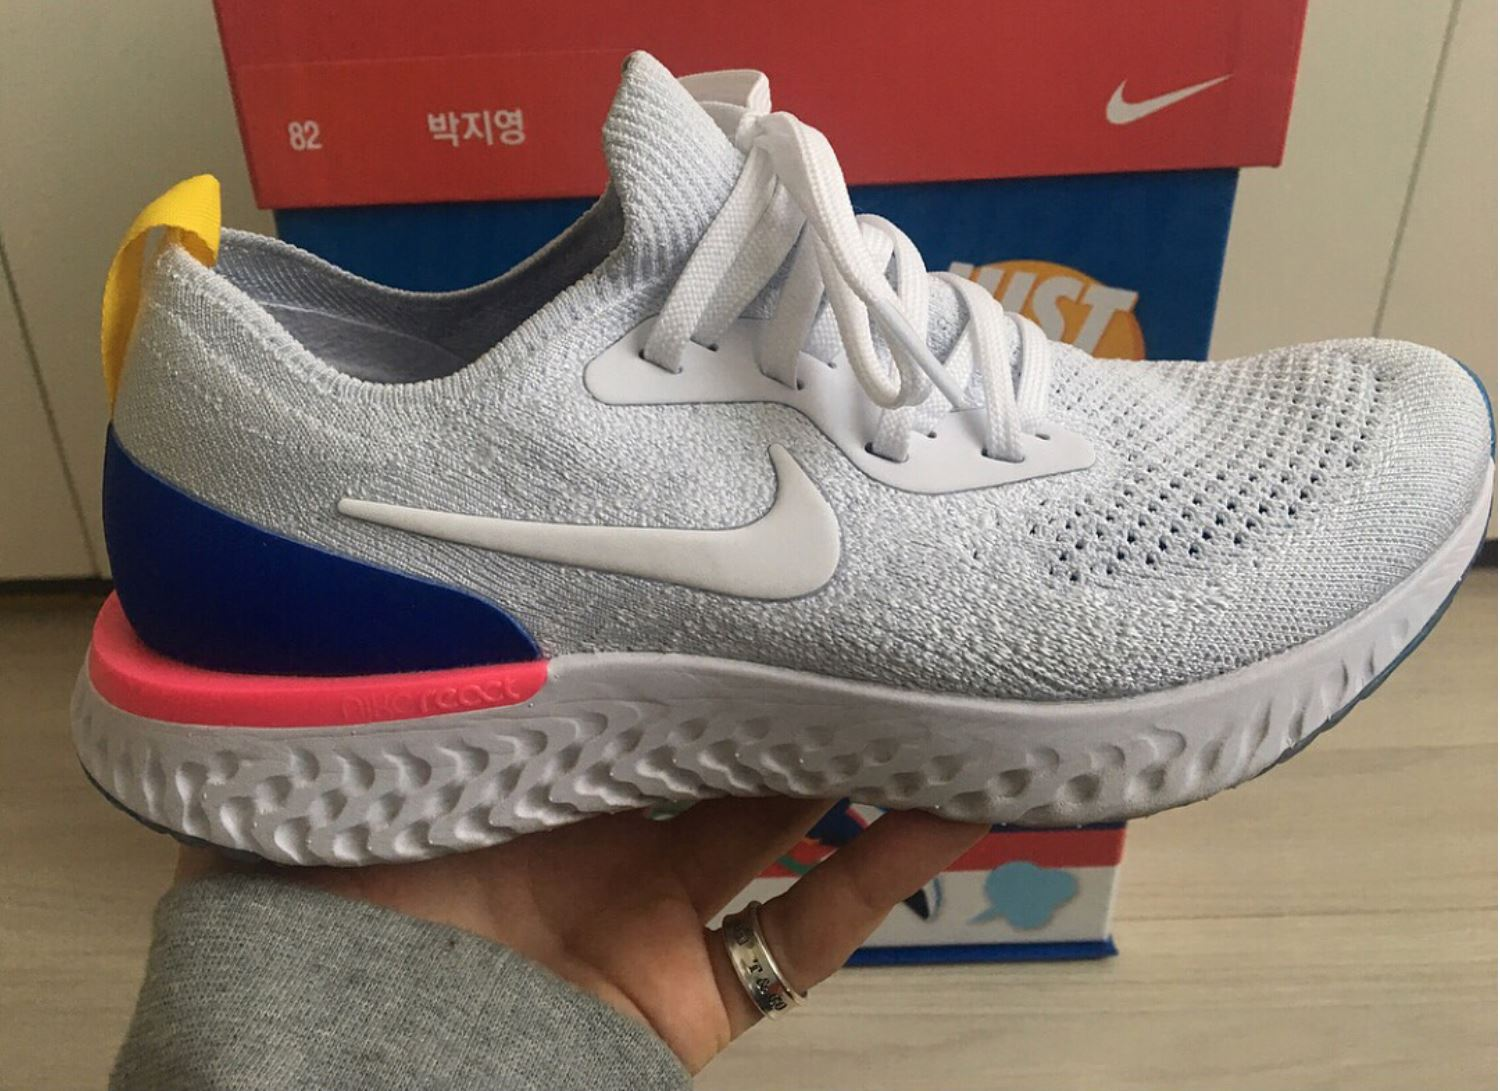 Nike Shoes Lunarlon Price